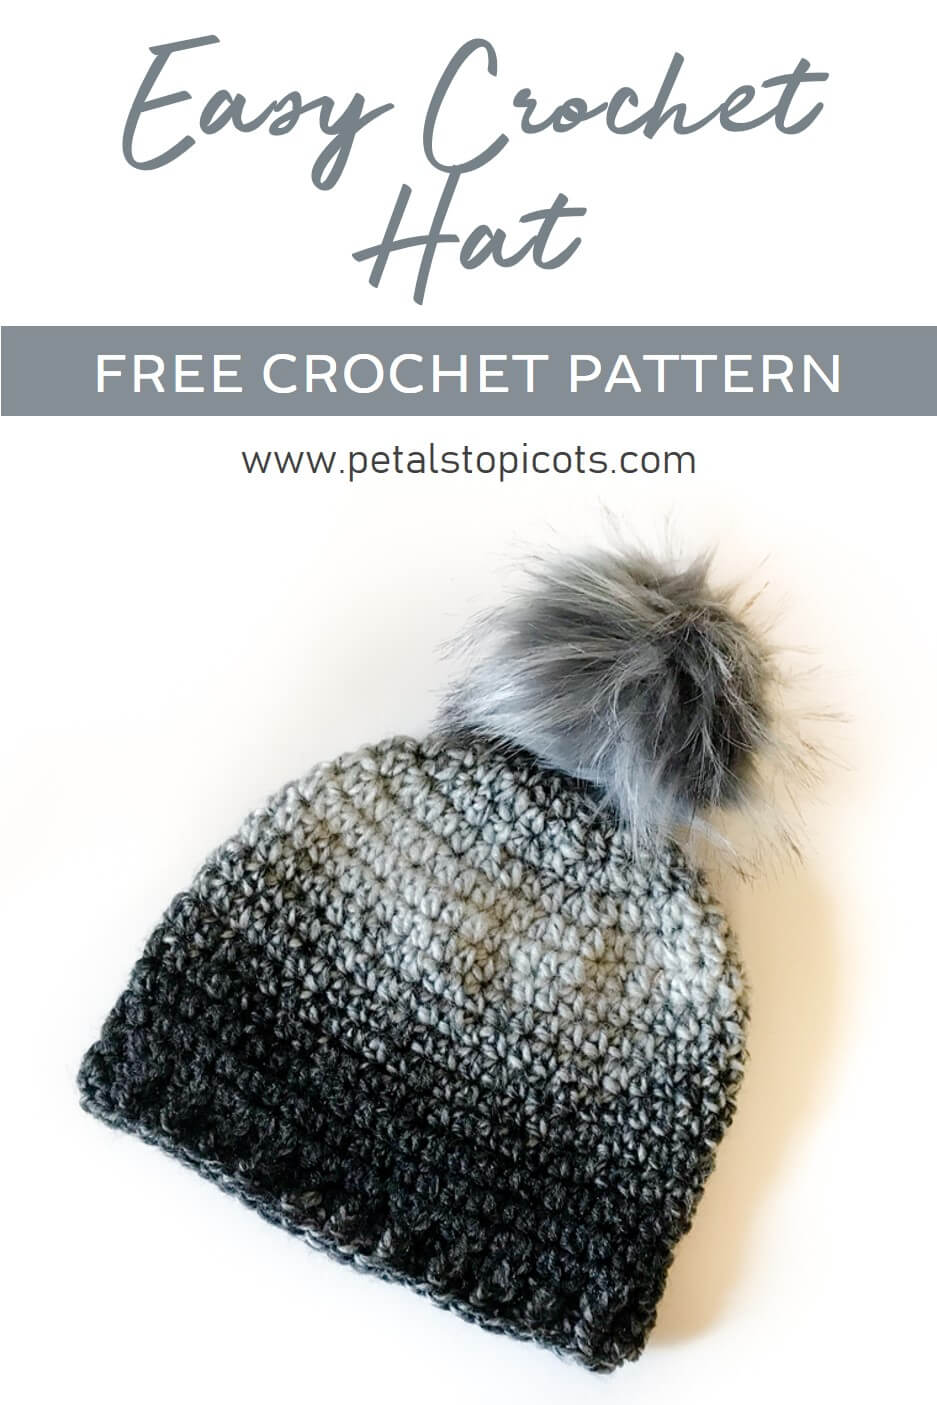 A super basic and easy crochet hat pattern for beginners and more experienced crocheters alike. #petalstopicots